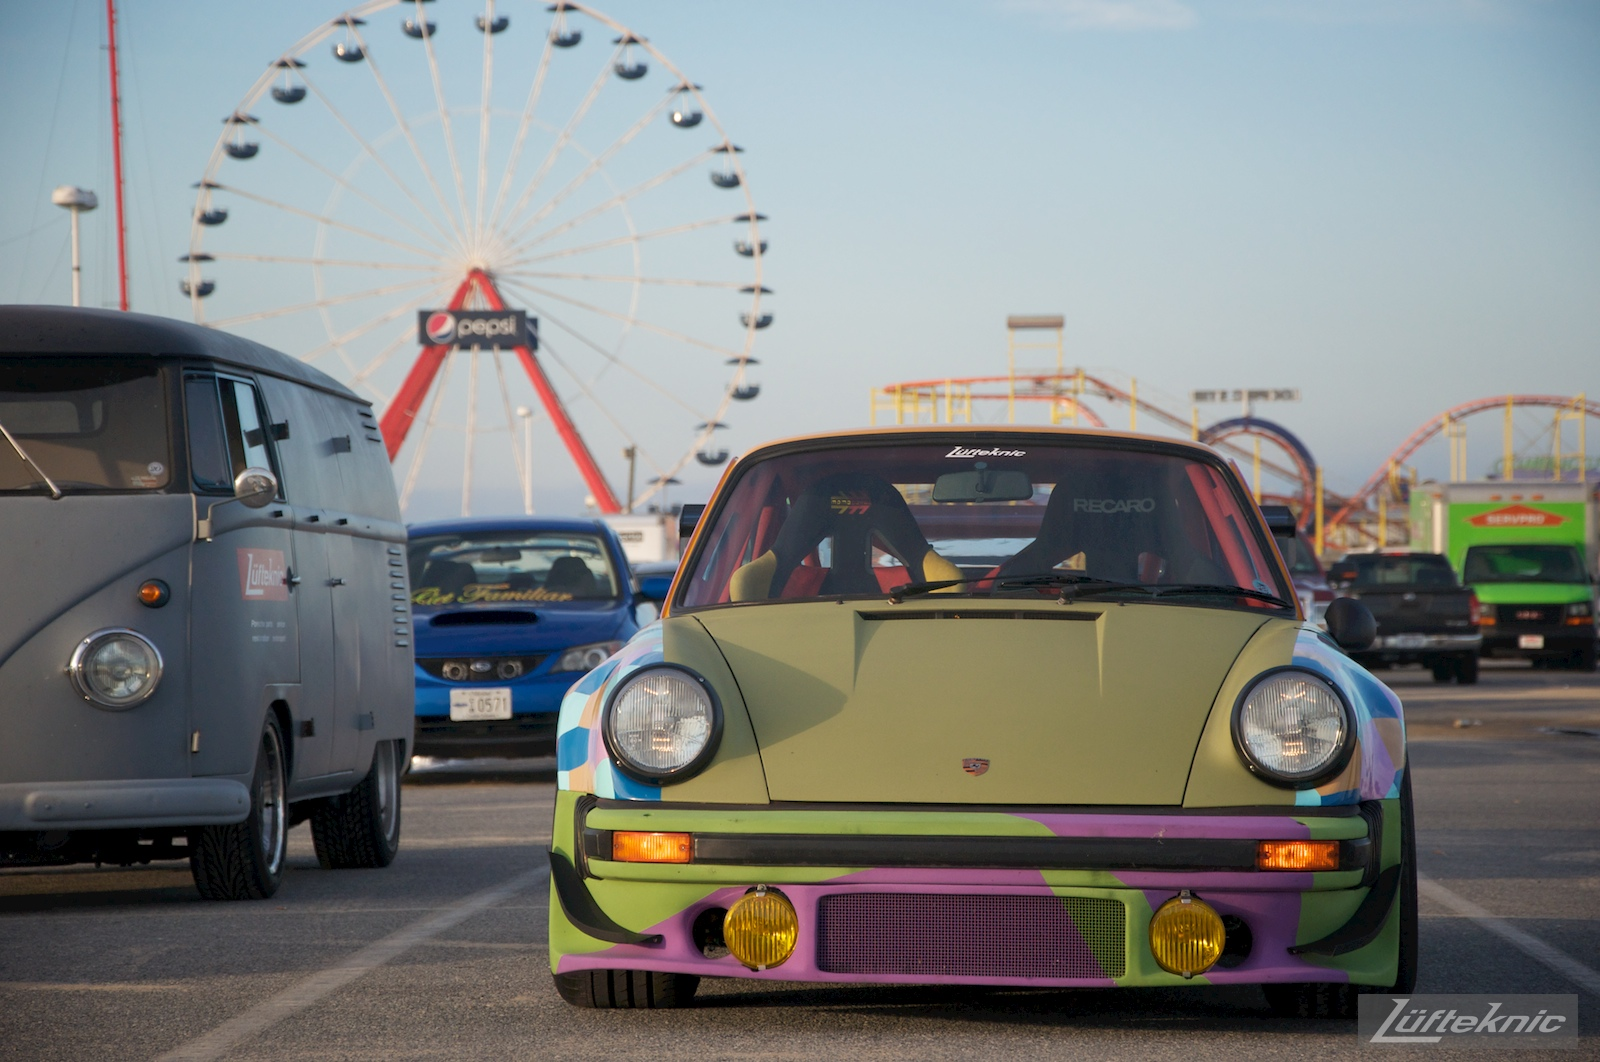 The Lüfteknic #projectstuka Porsche 930 Turbo and porschebus with a ferris wheel and roller coaster behind.